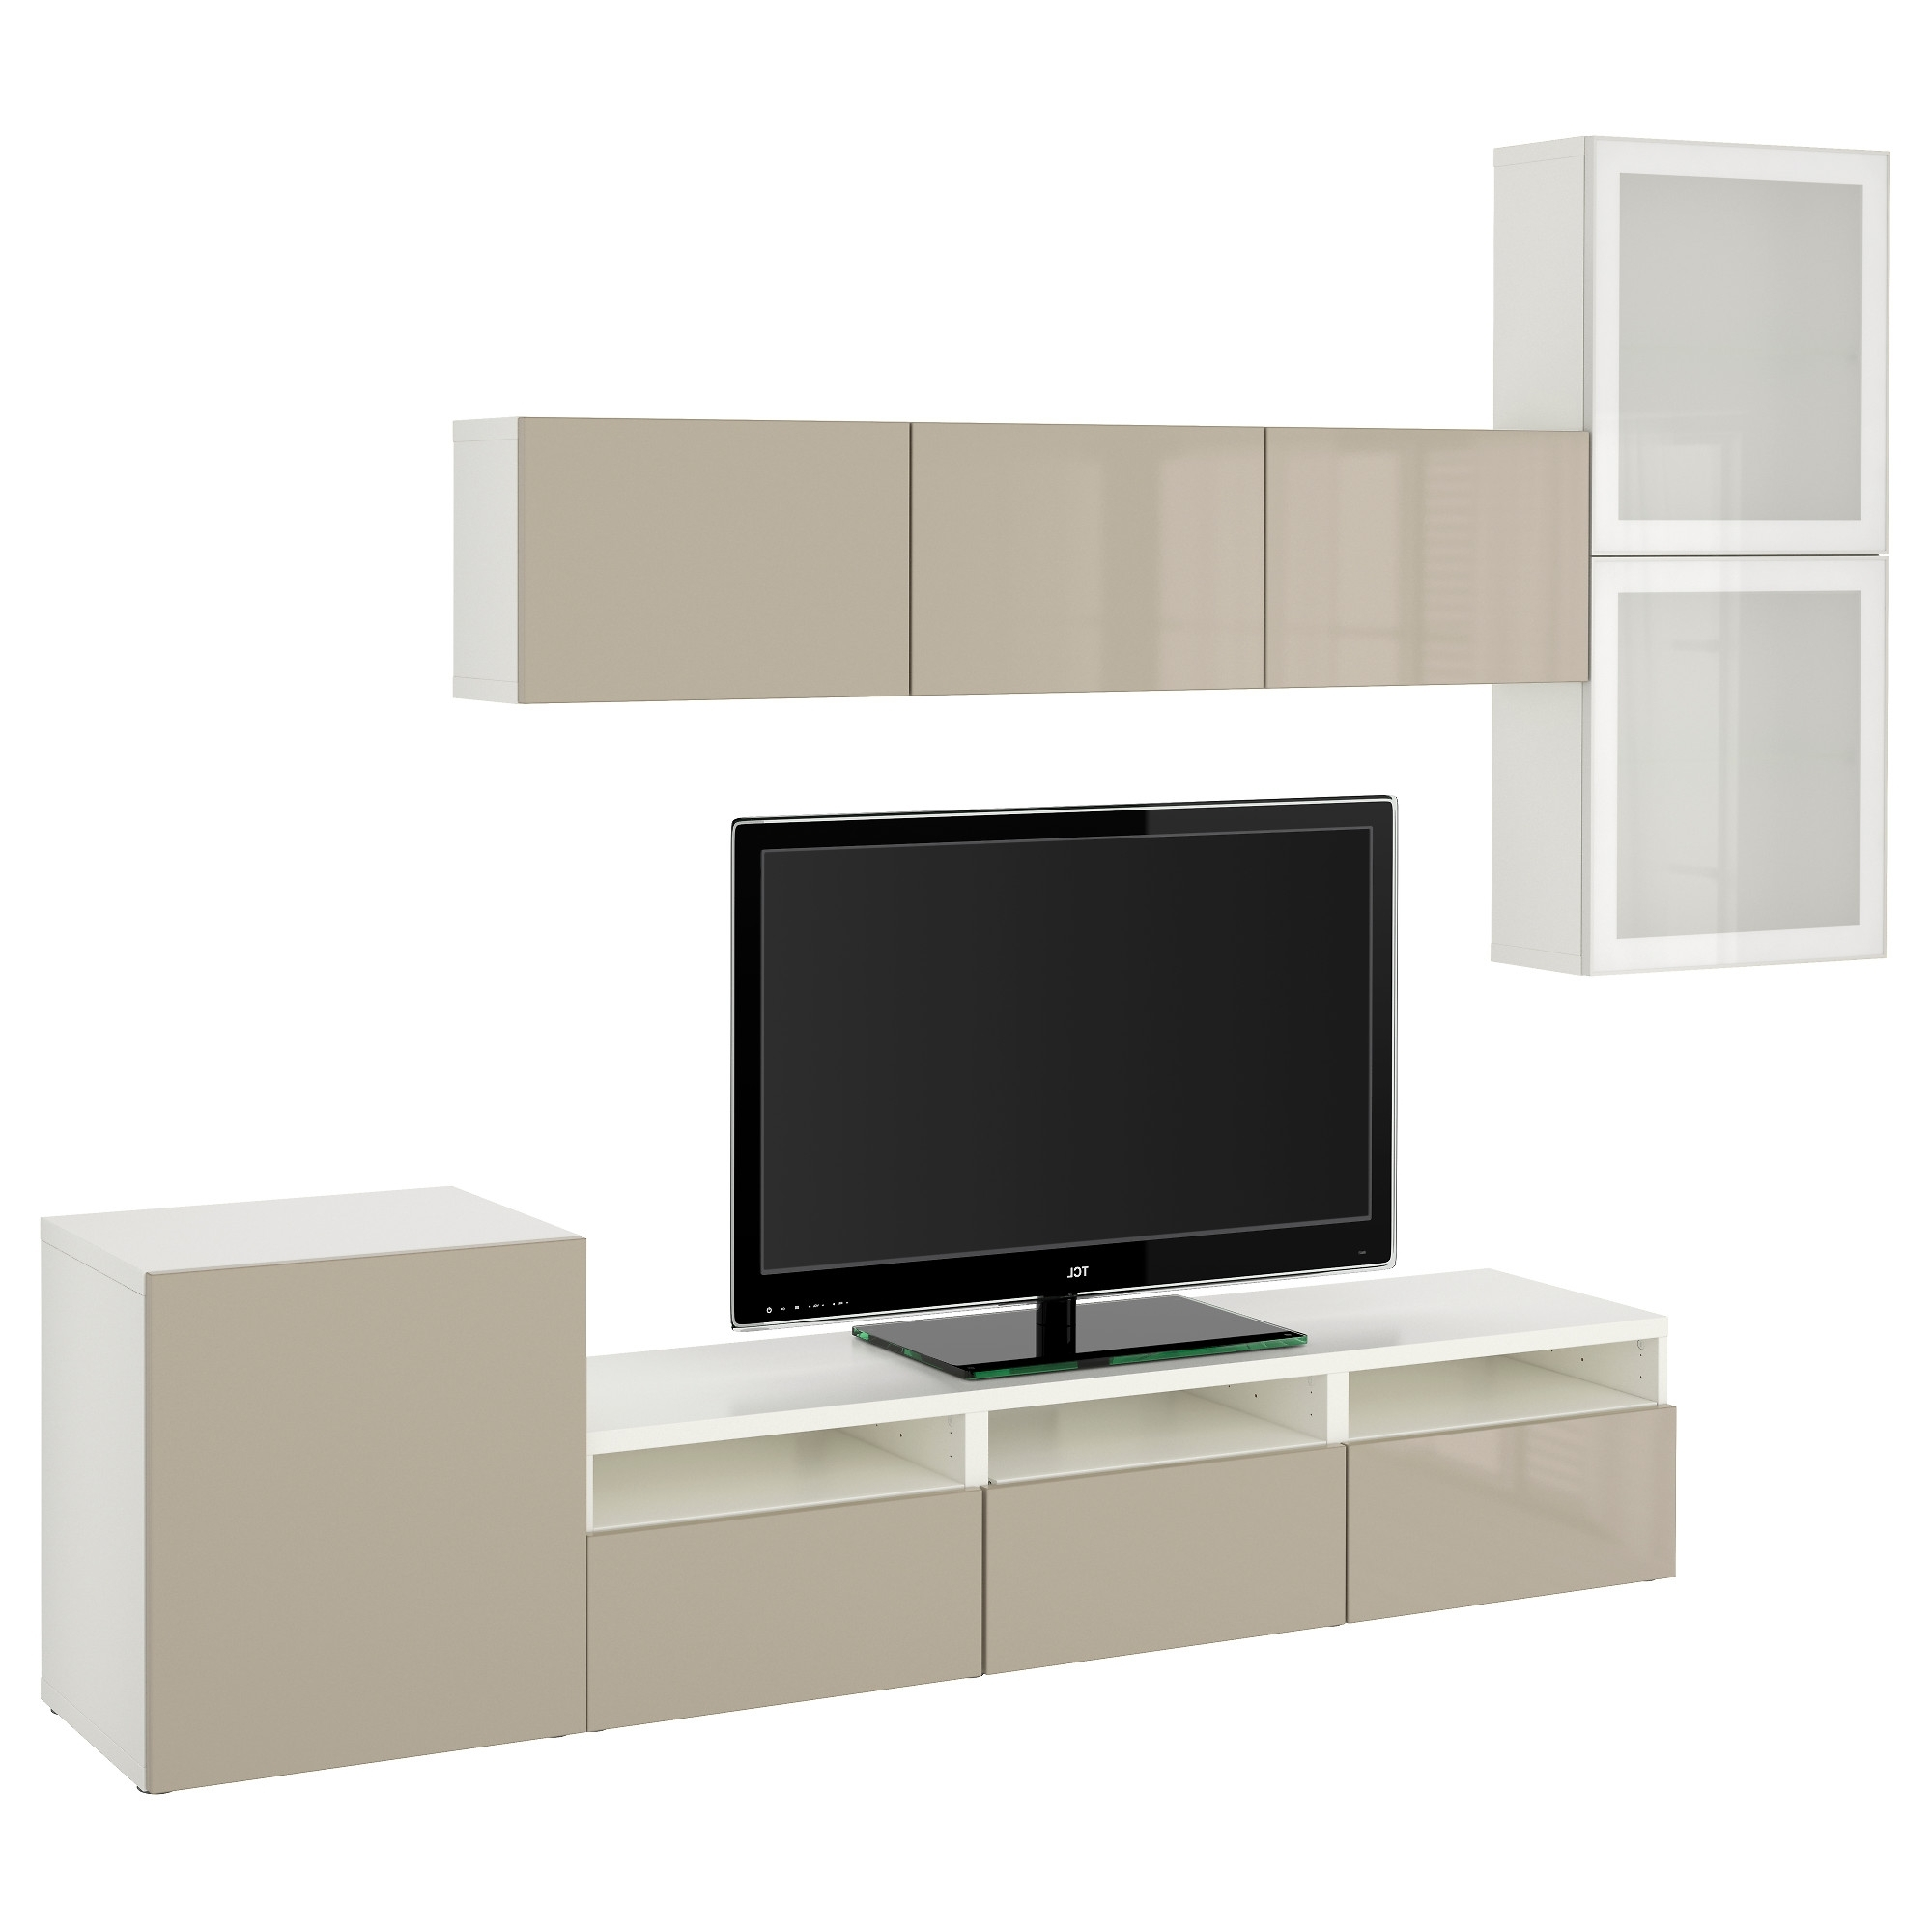 mobilya bookcases products picture minar istanbul puzzle enigma with walnut of recently bookcase kitaplik stand tv unitesi viewed